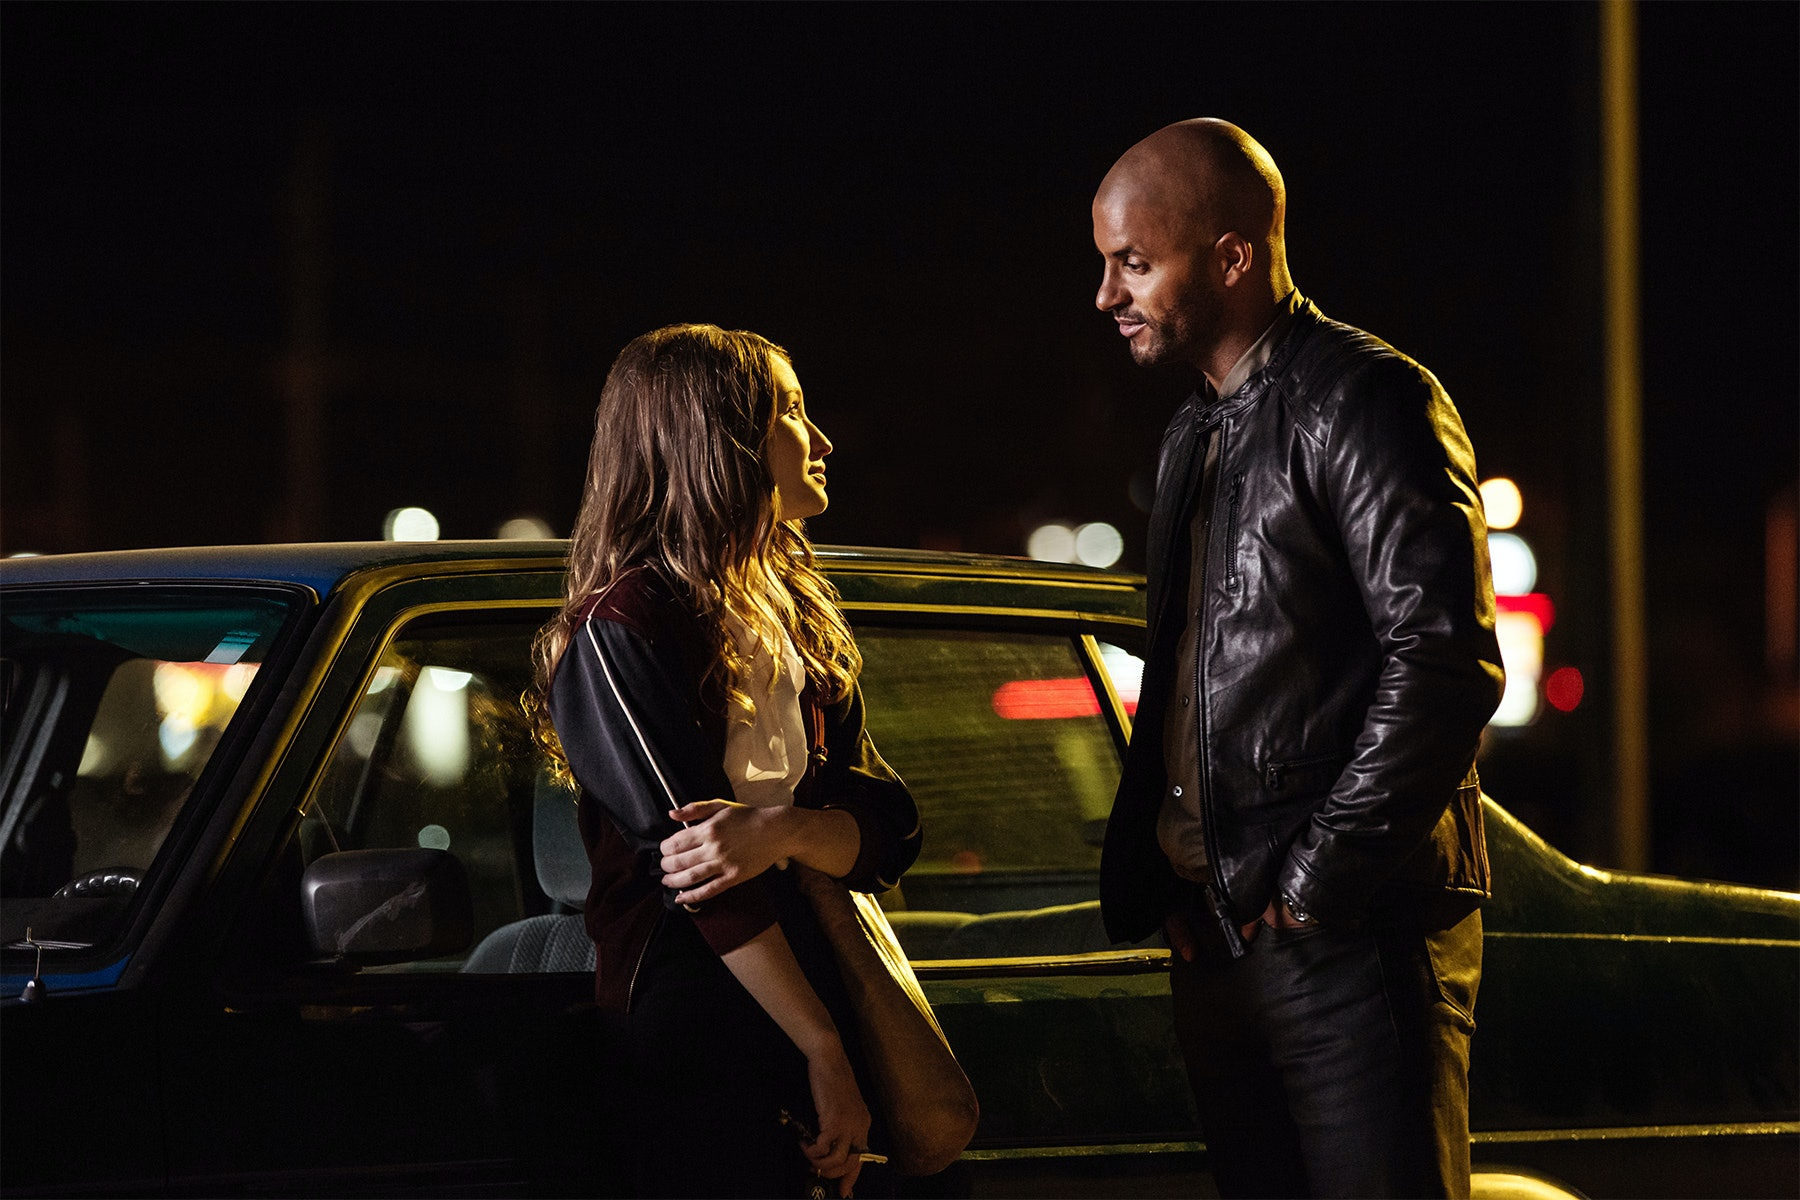 Ricky Whittle and Emily Browning in 'American Gods' Episode 4